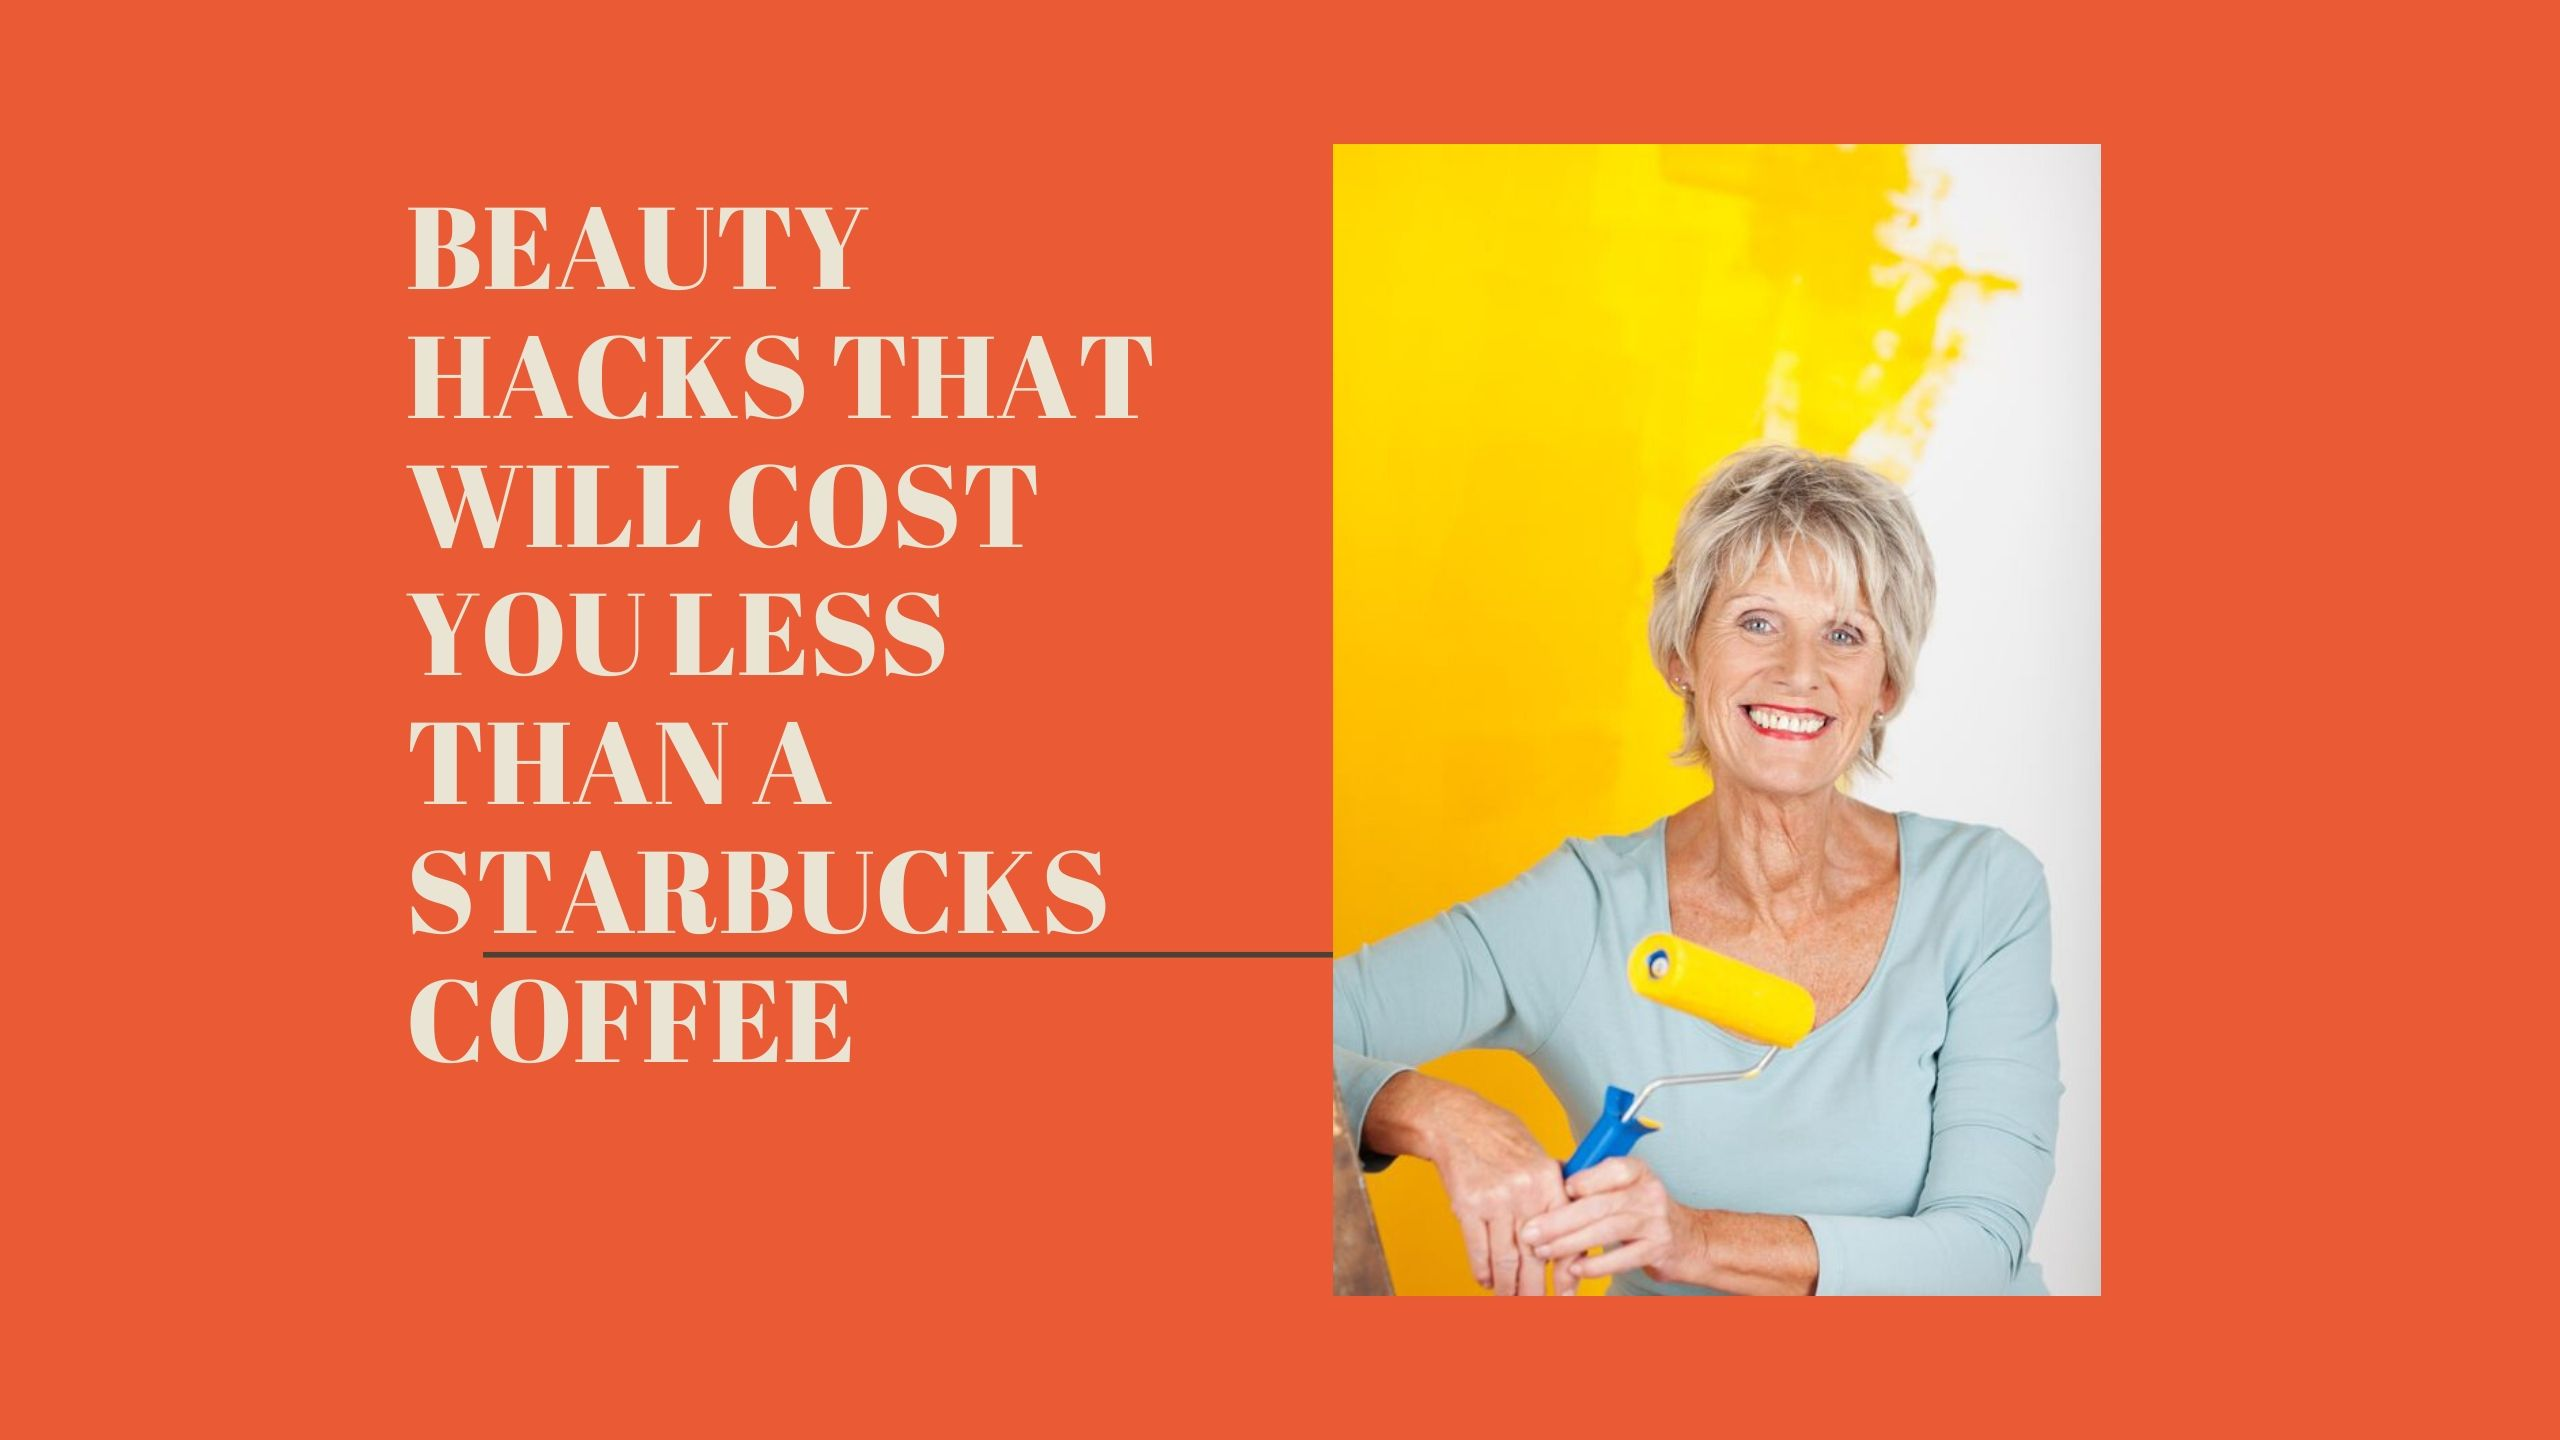 Beauty Hacks That Will Cost You Less Than A Starbucks Coffee